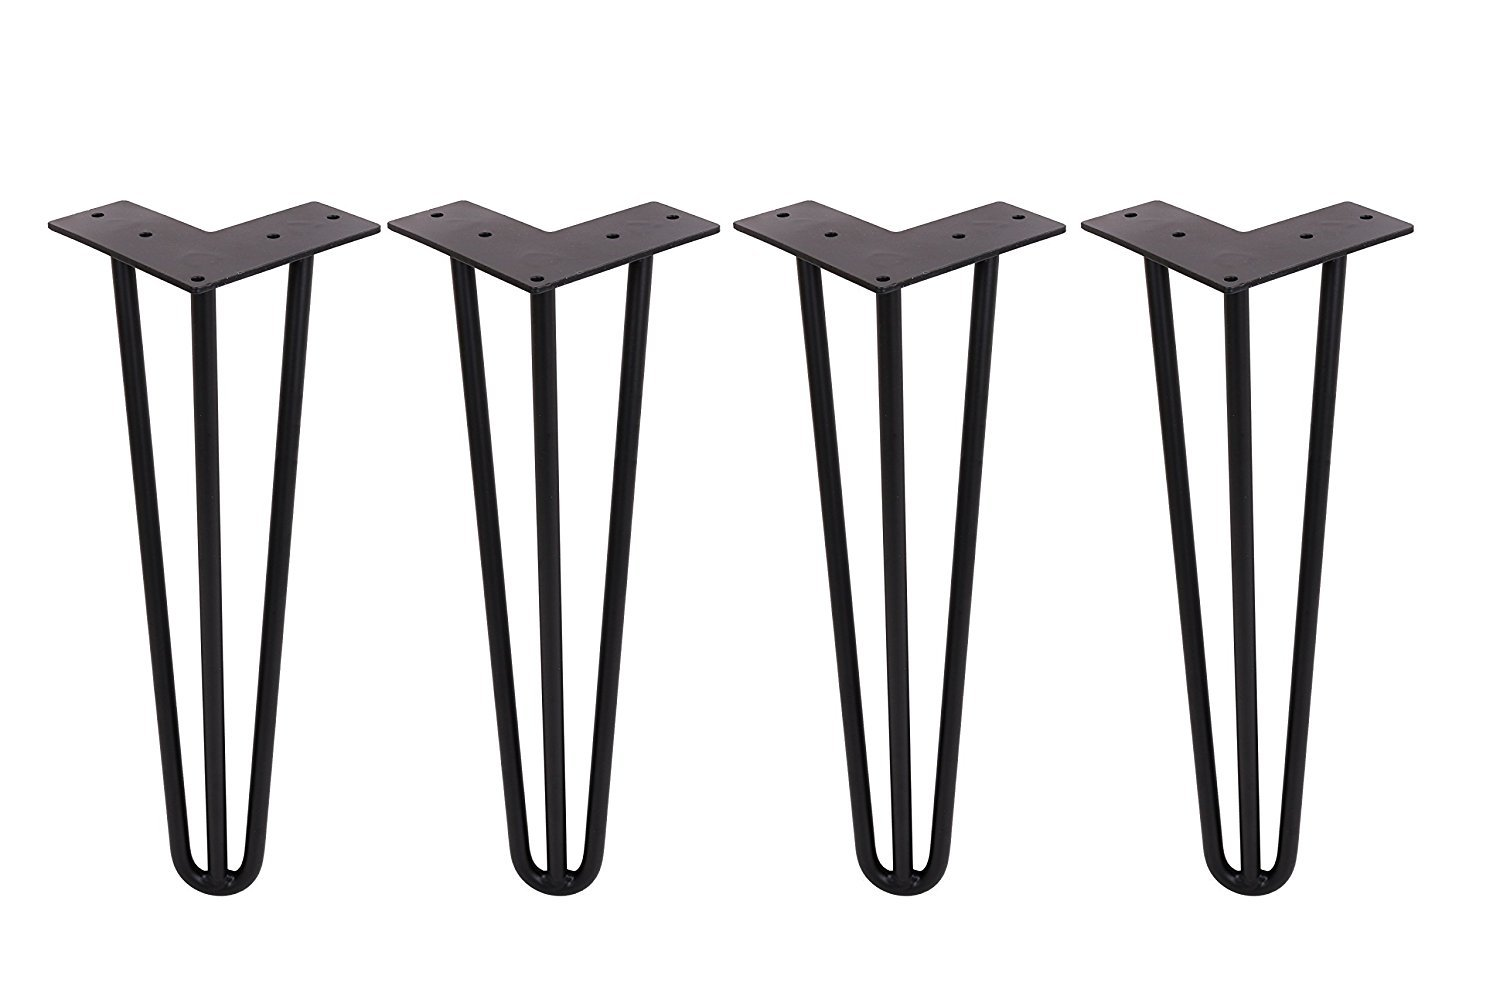 Yoler Hairpin Table Legs 16 Inches Satin Black, 3 rods, Set of 4 Heavy Duty Metal Coffee Table Legs